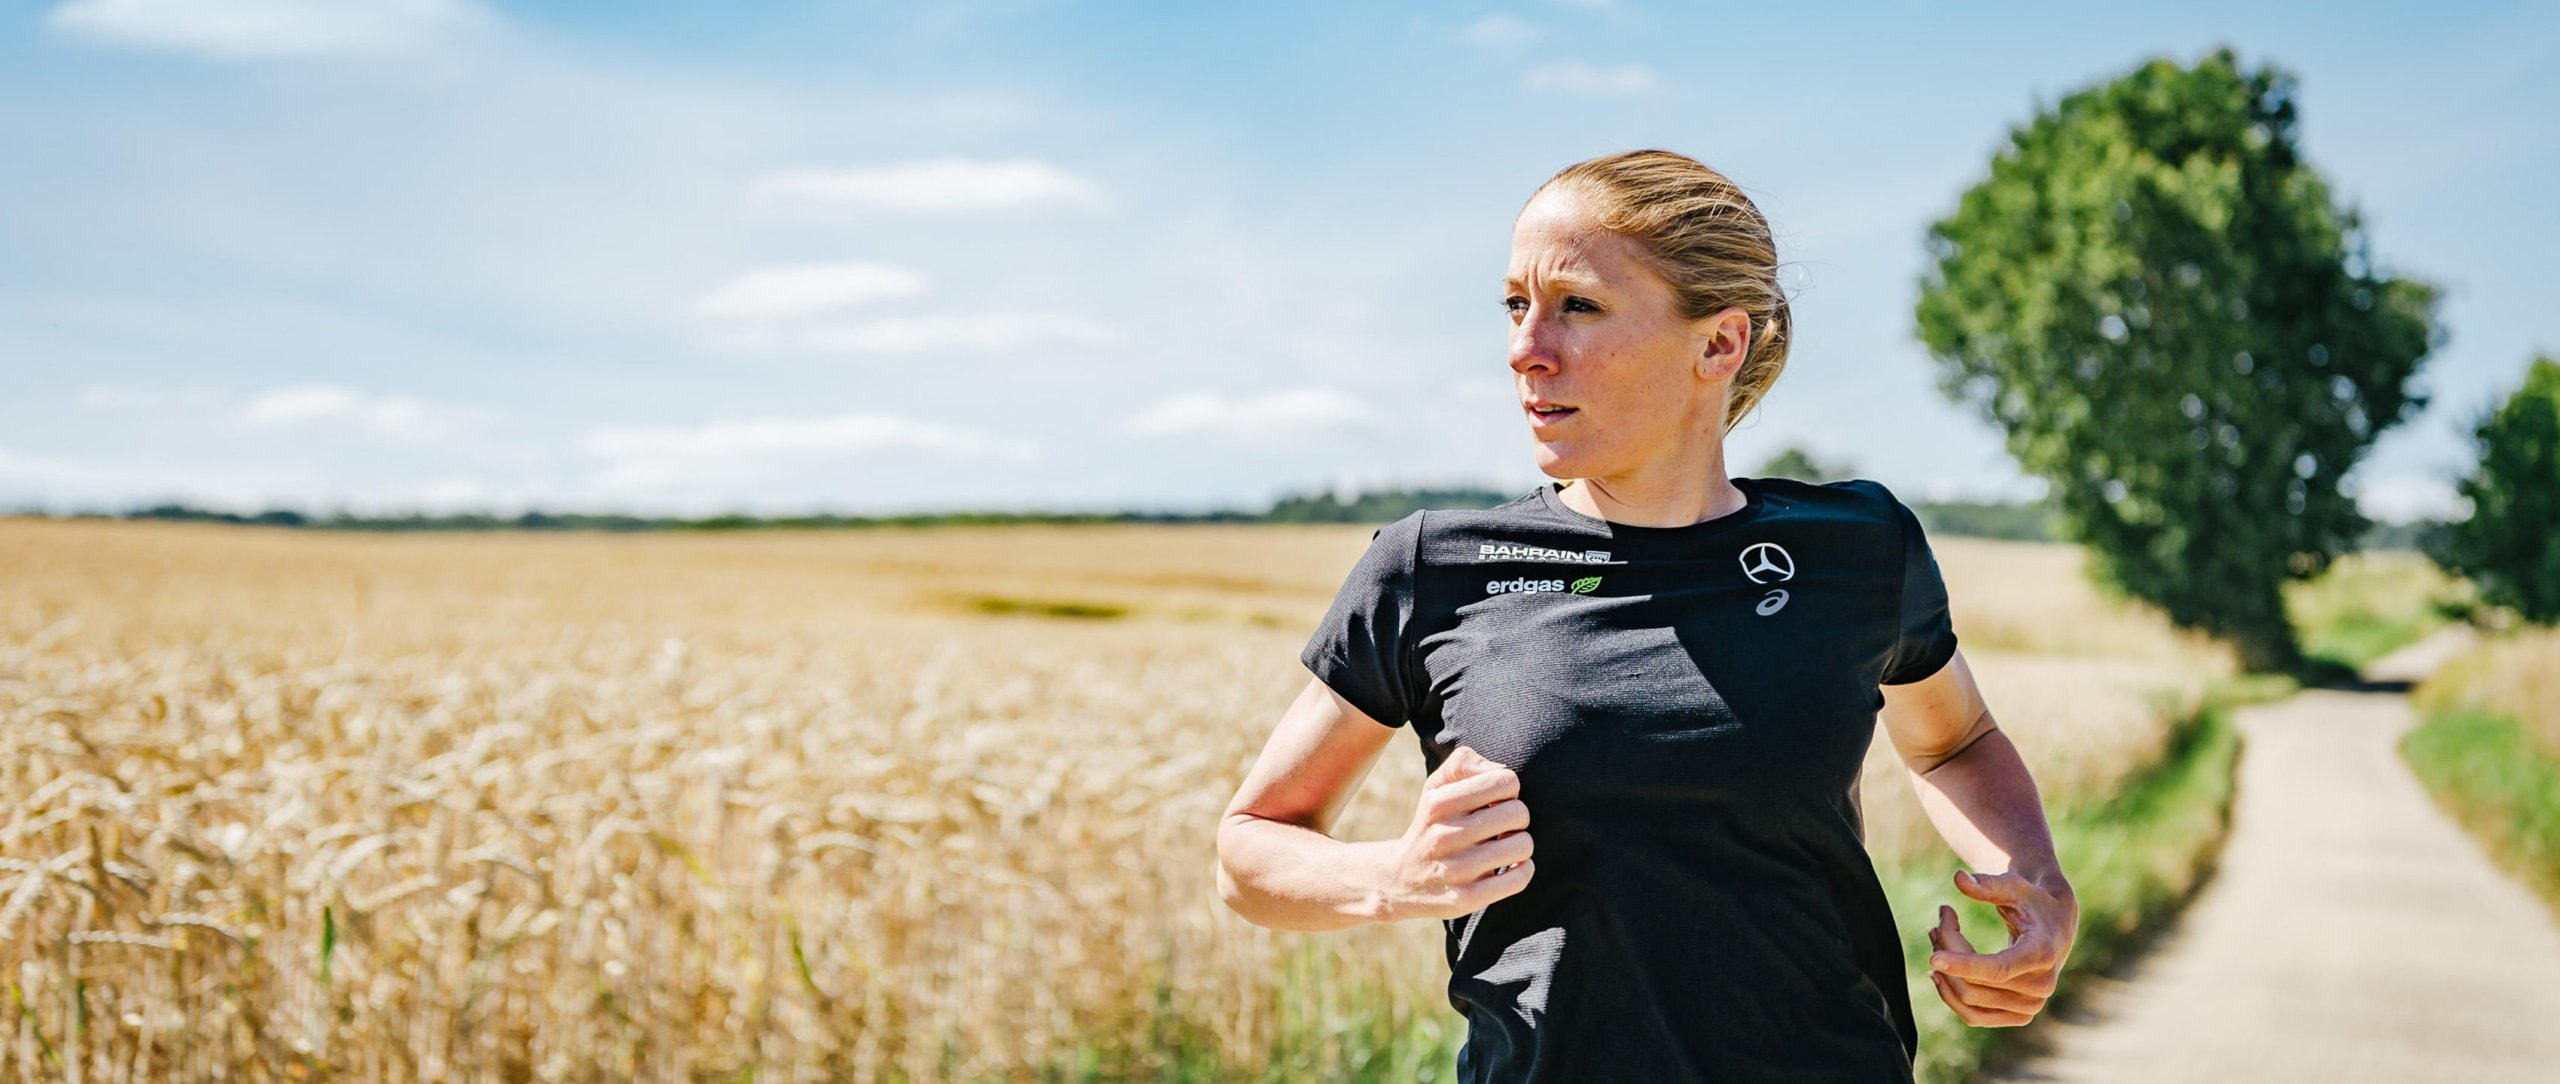 The secret behind the success of the two-time IRONMAN champion Daniela Ryf is finding the right balance.